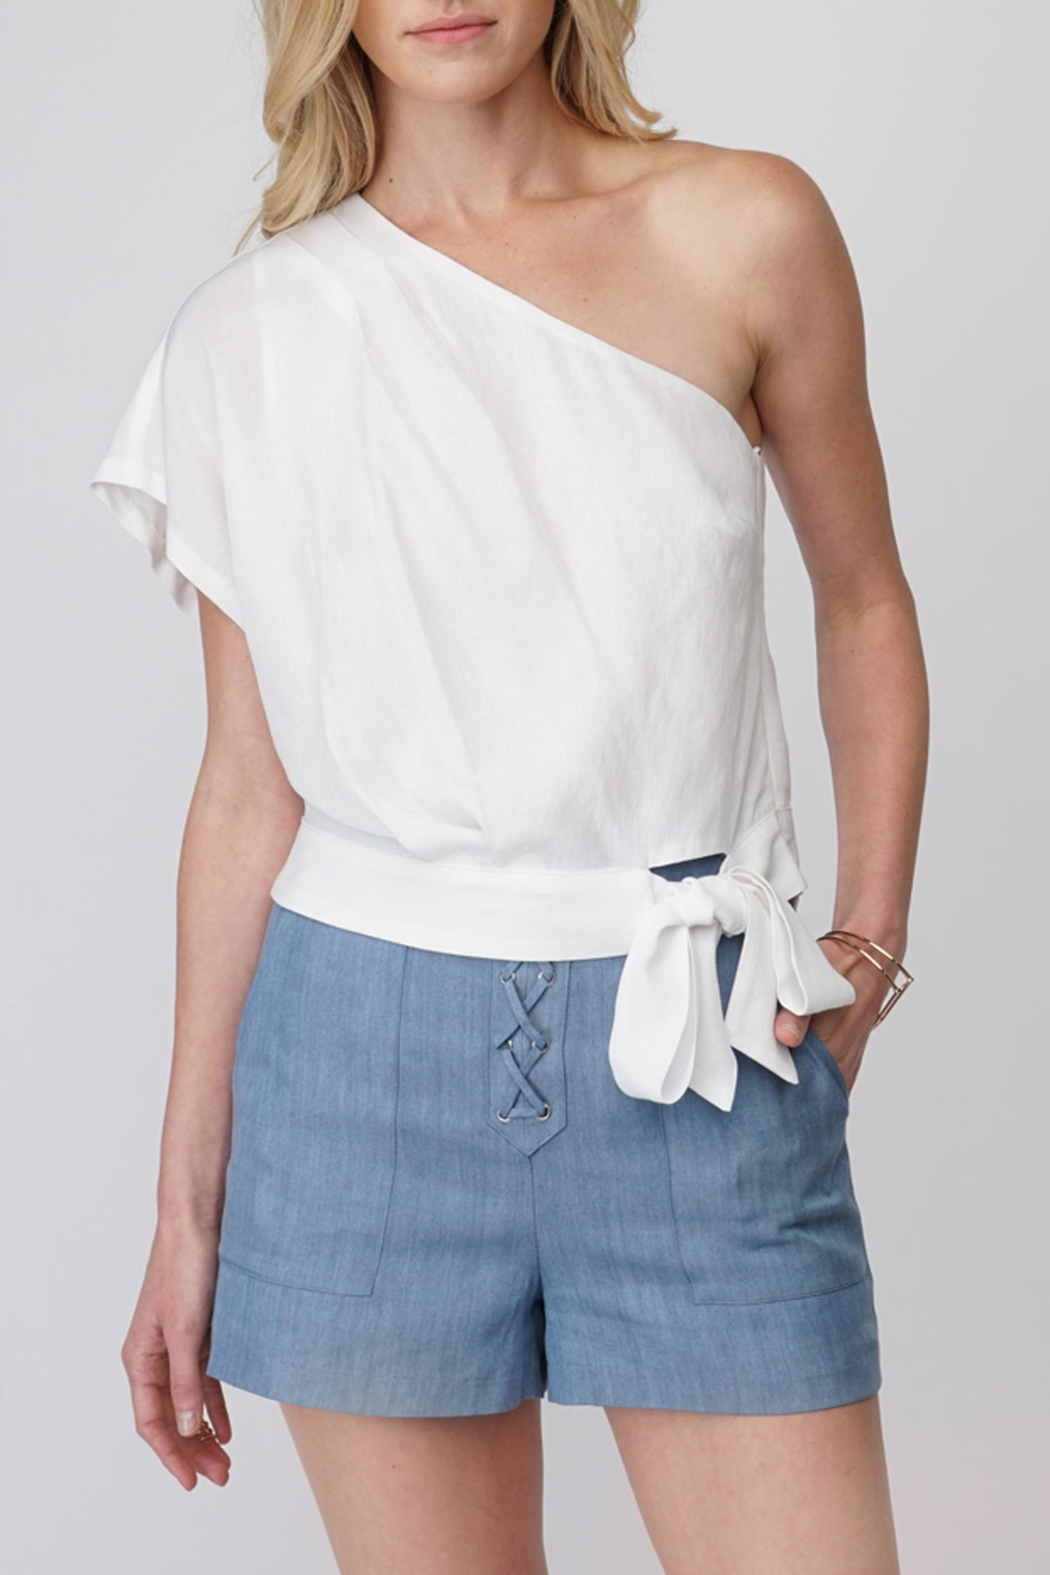 Greylin One Shoulder Blouse - Main Image